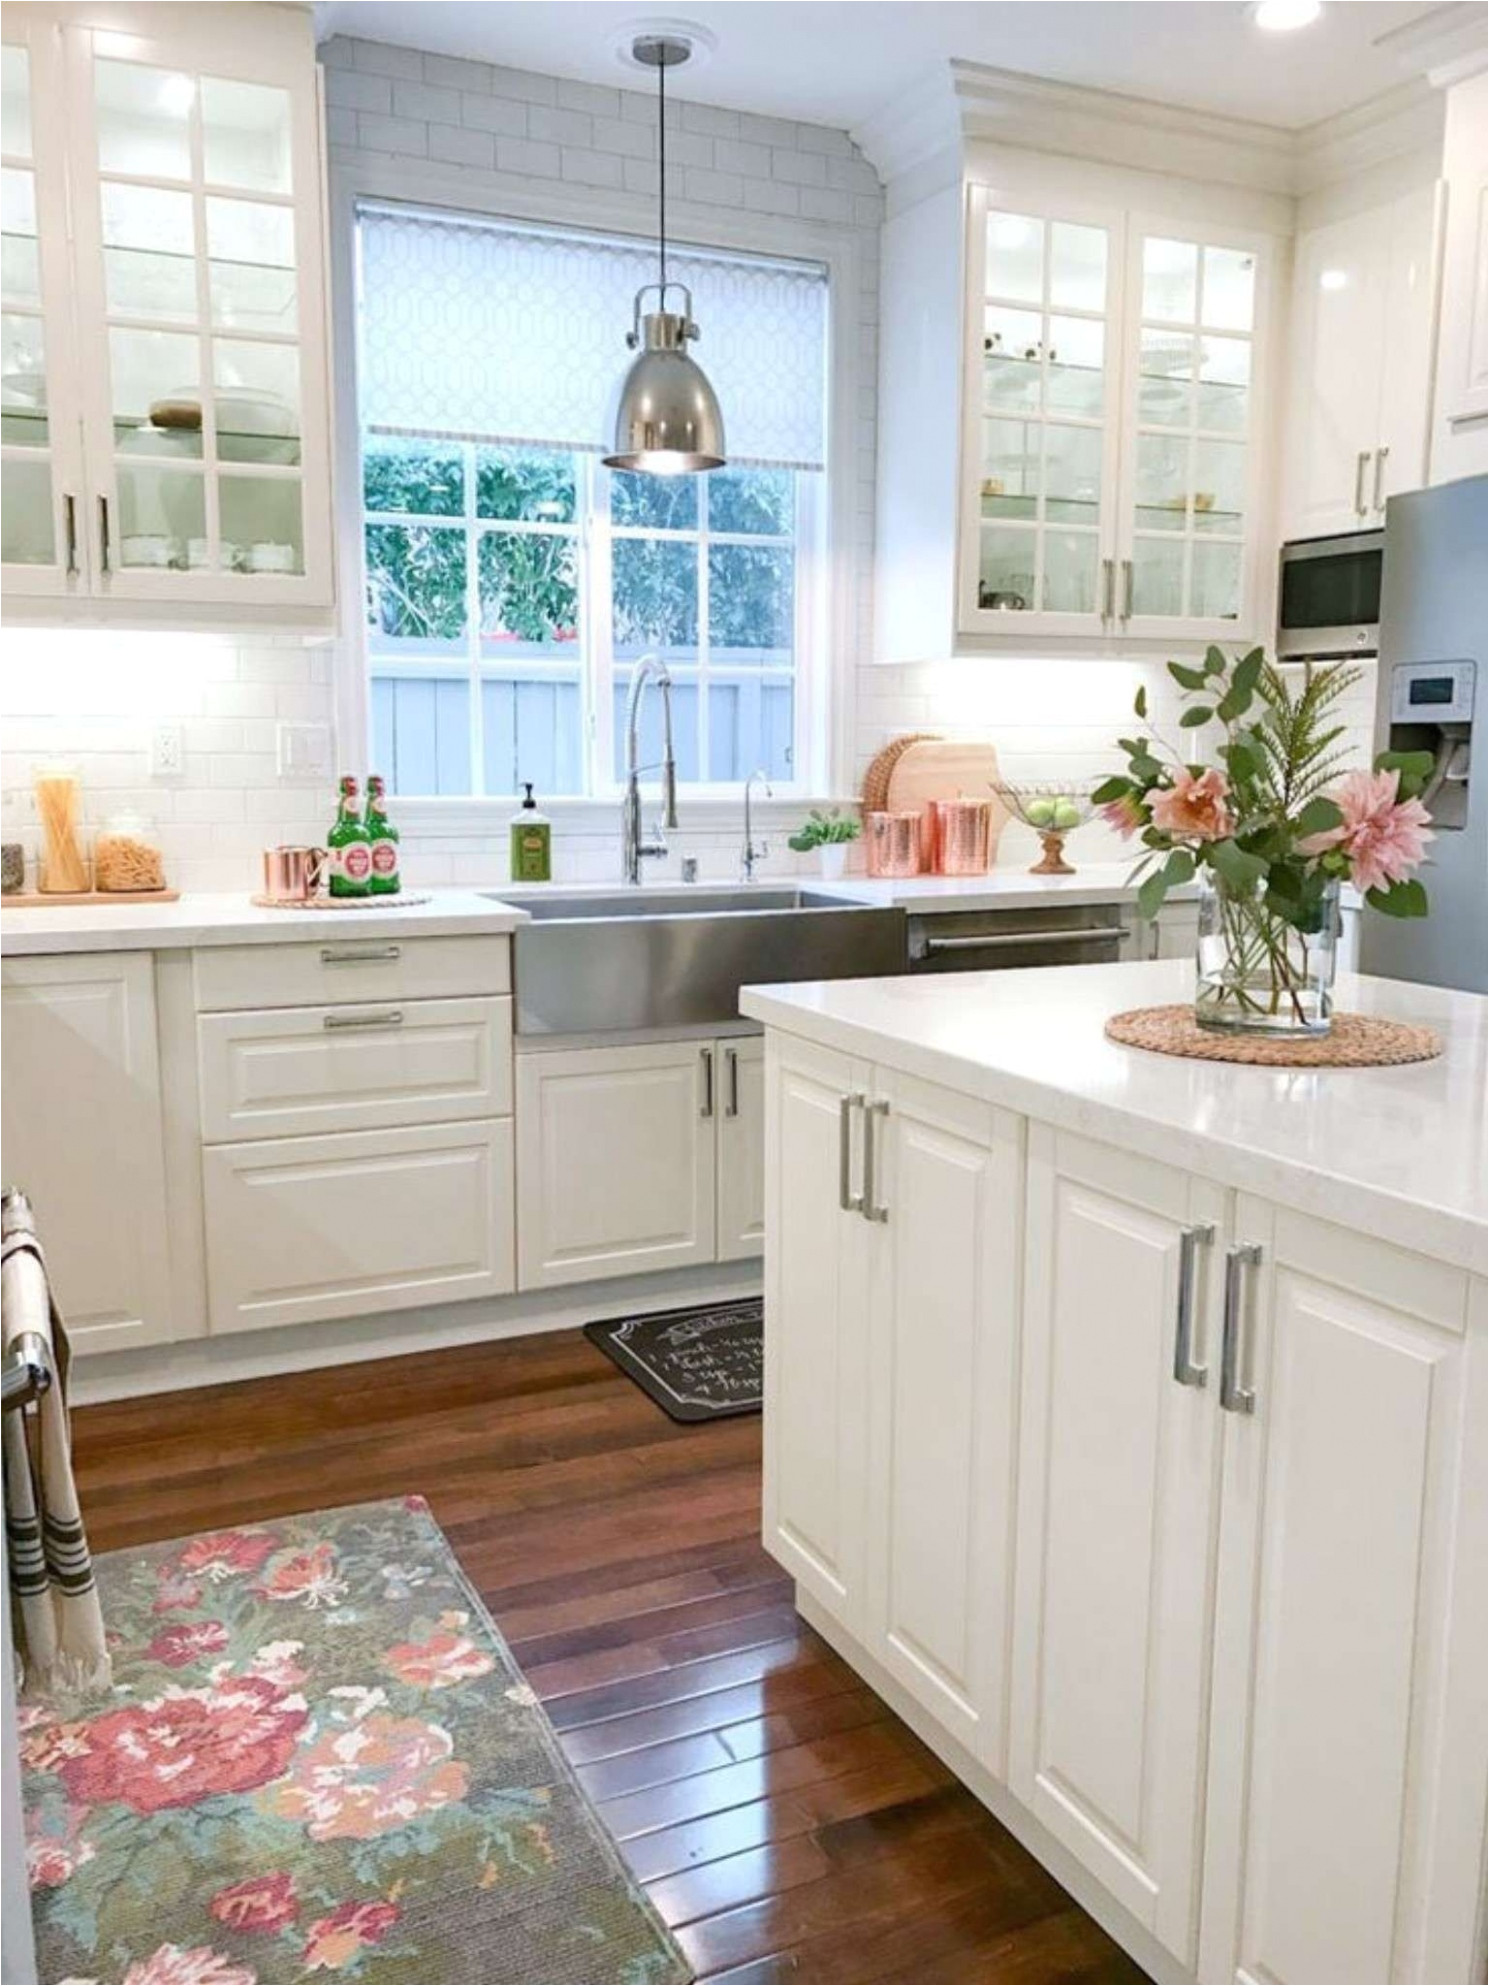 12 photos gallery of white corner cabinet image of white upper cabinets cabinet kitchen best kitchen cabinets fresh